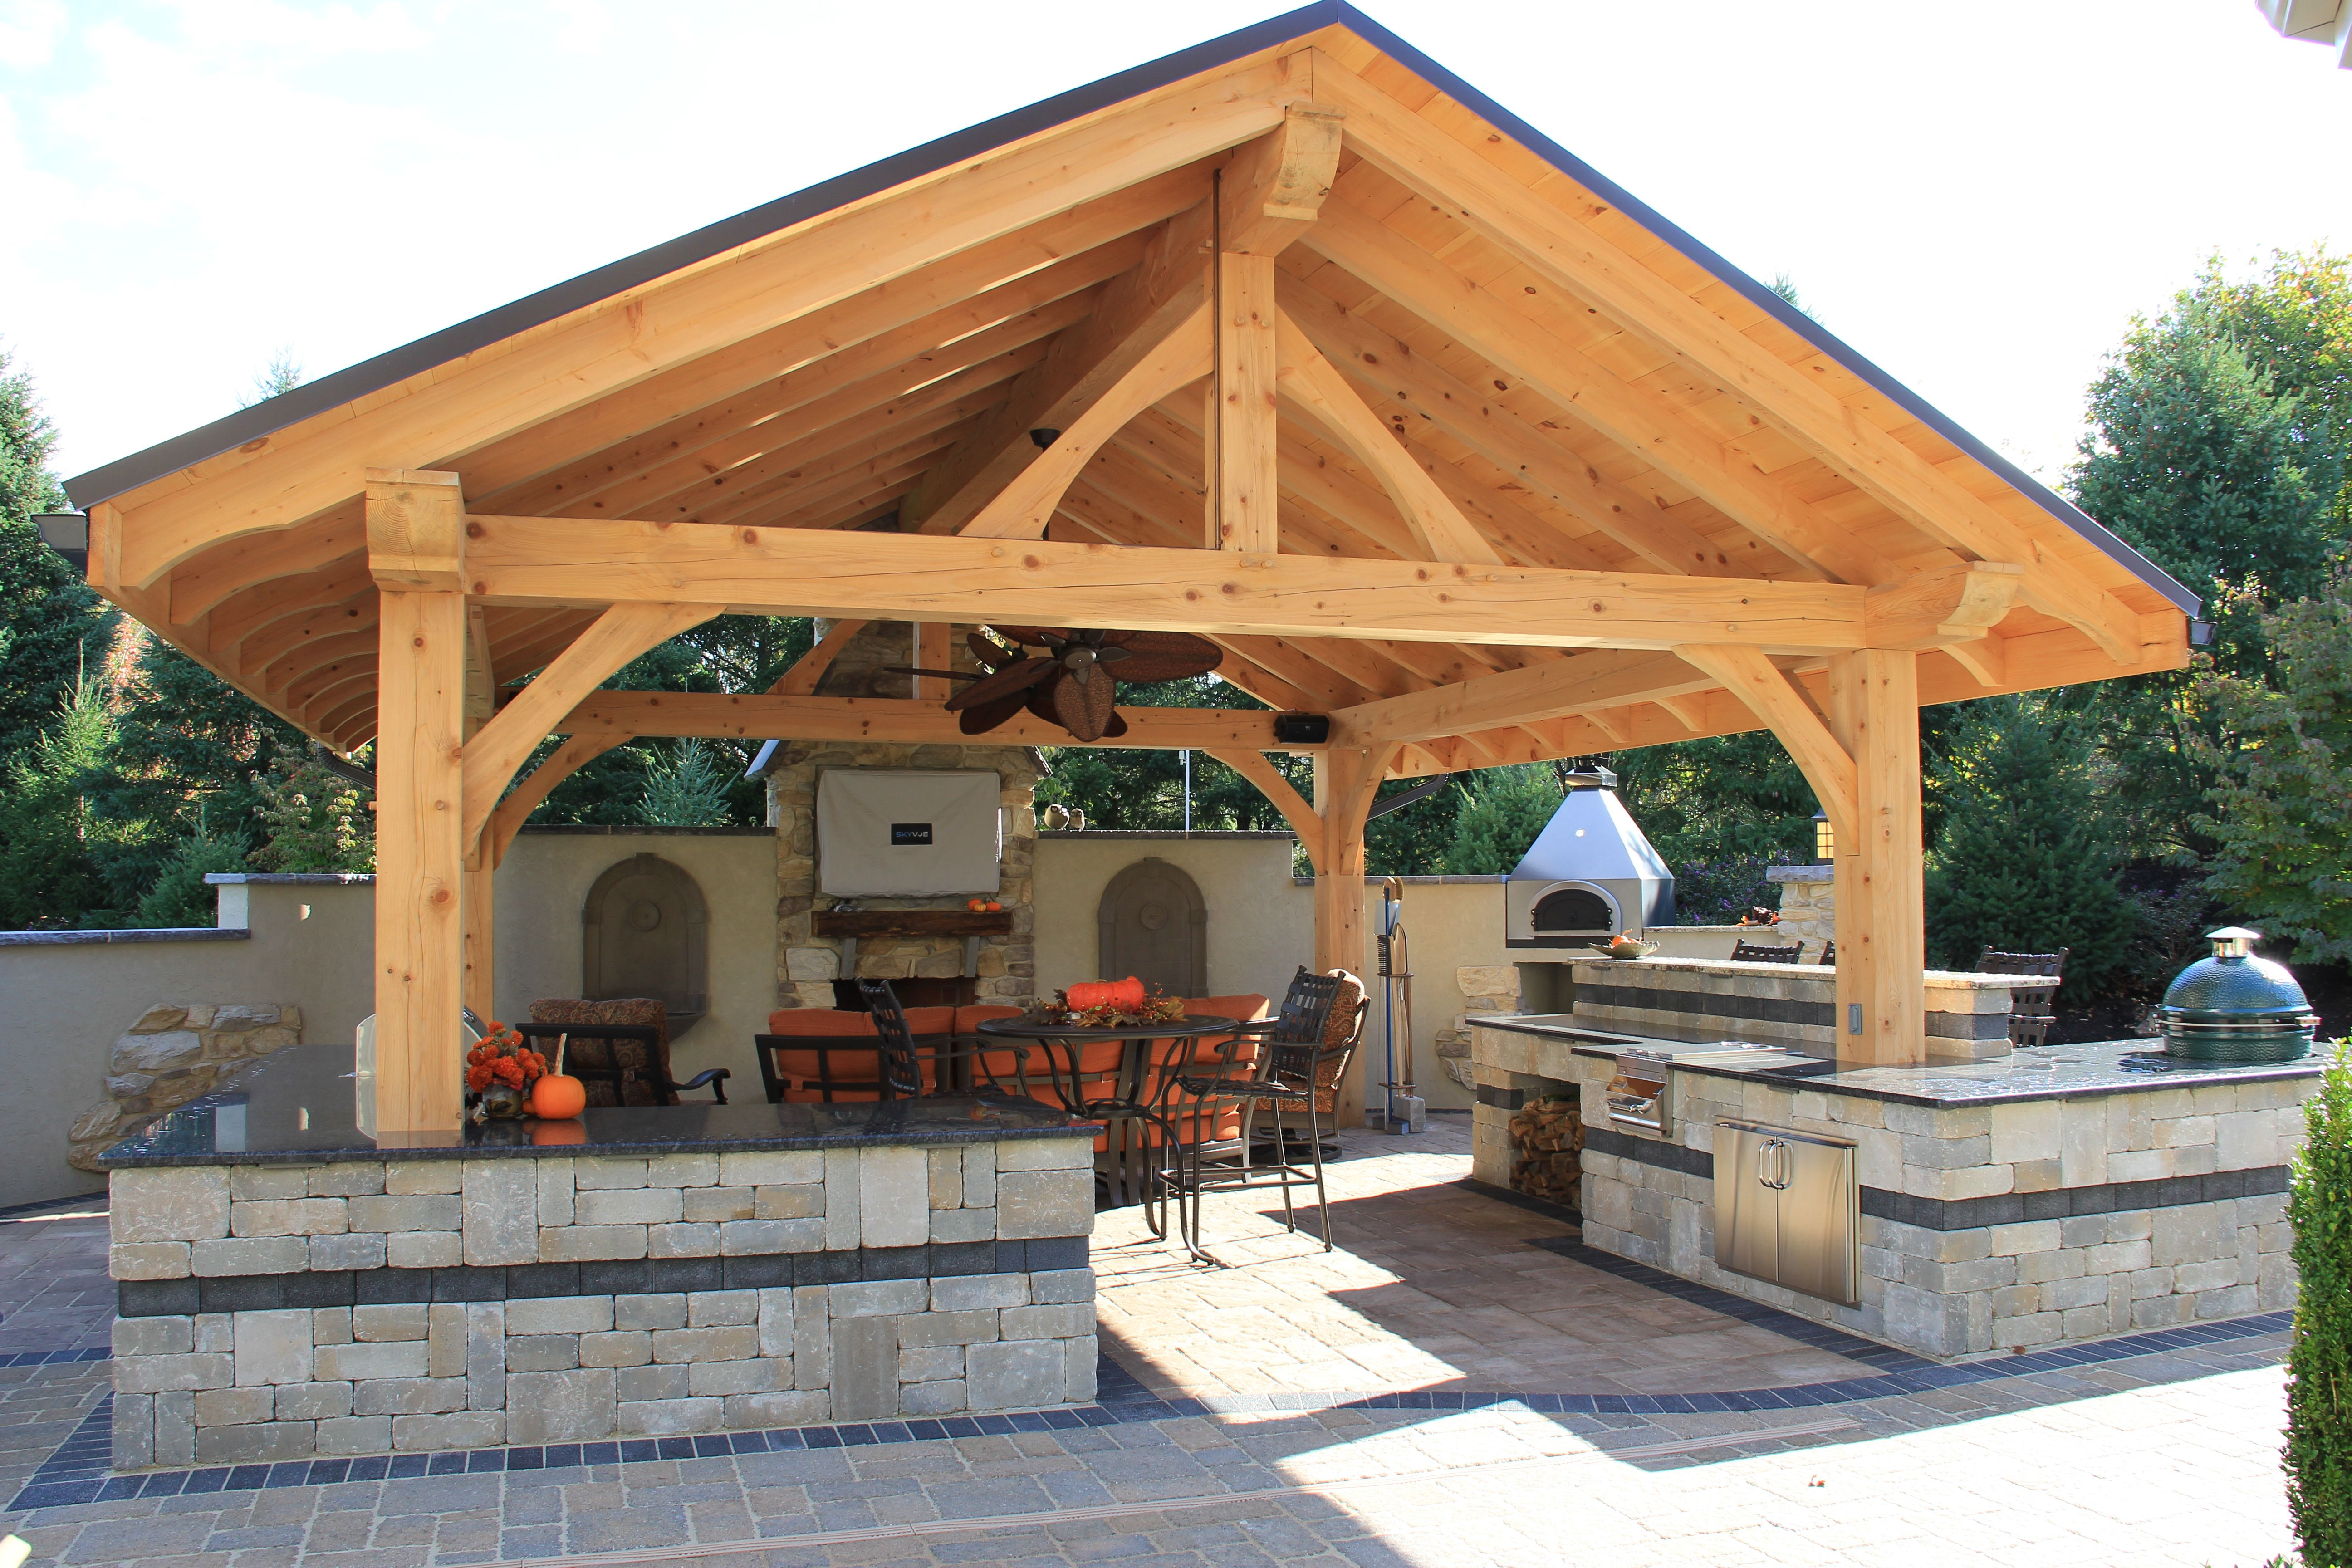 Timber Frame Pavilion With Full Outdoor Kitchen Including Pizza Oven Gas Range Outdoor Kitchen Outdoor Kitchen Design Outdoor Pavilion